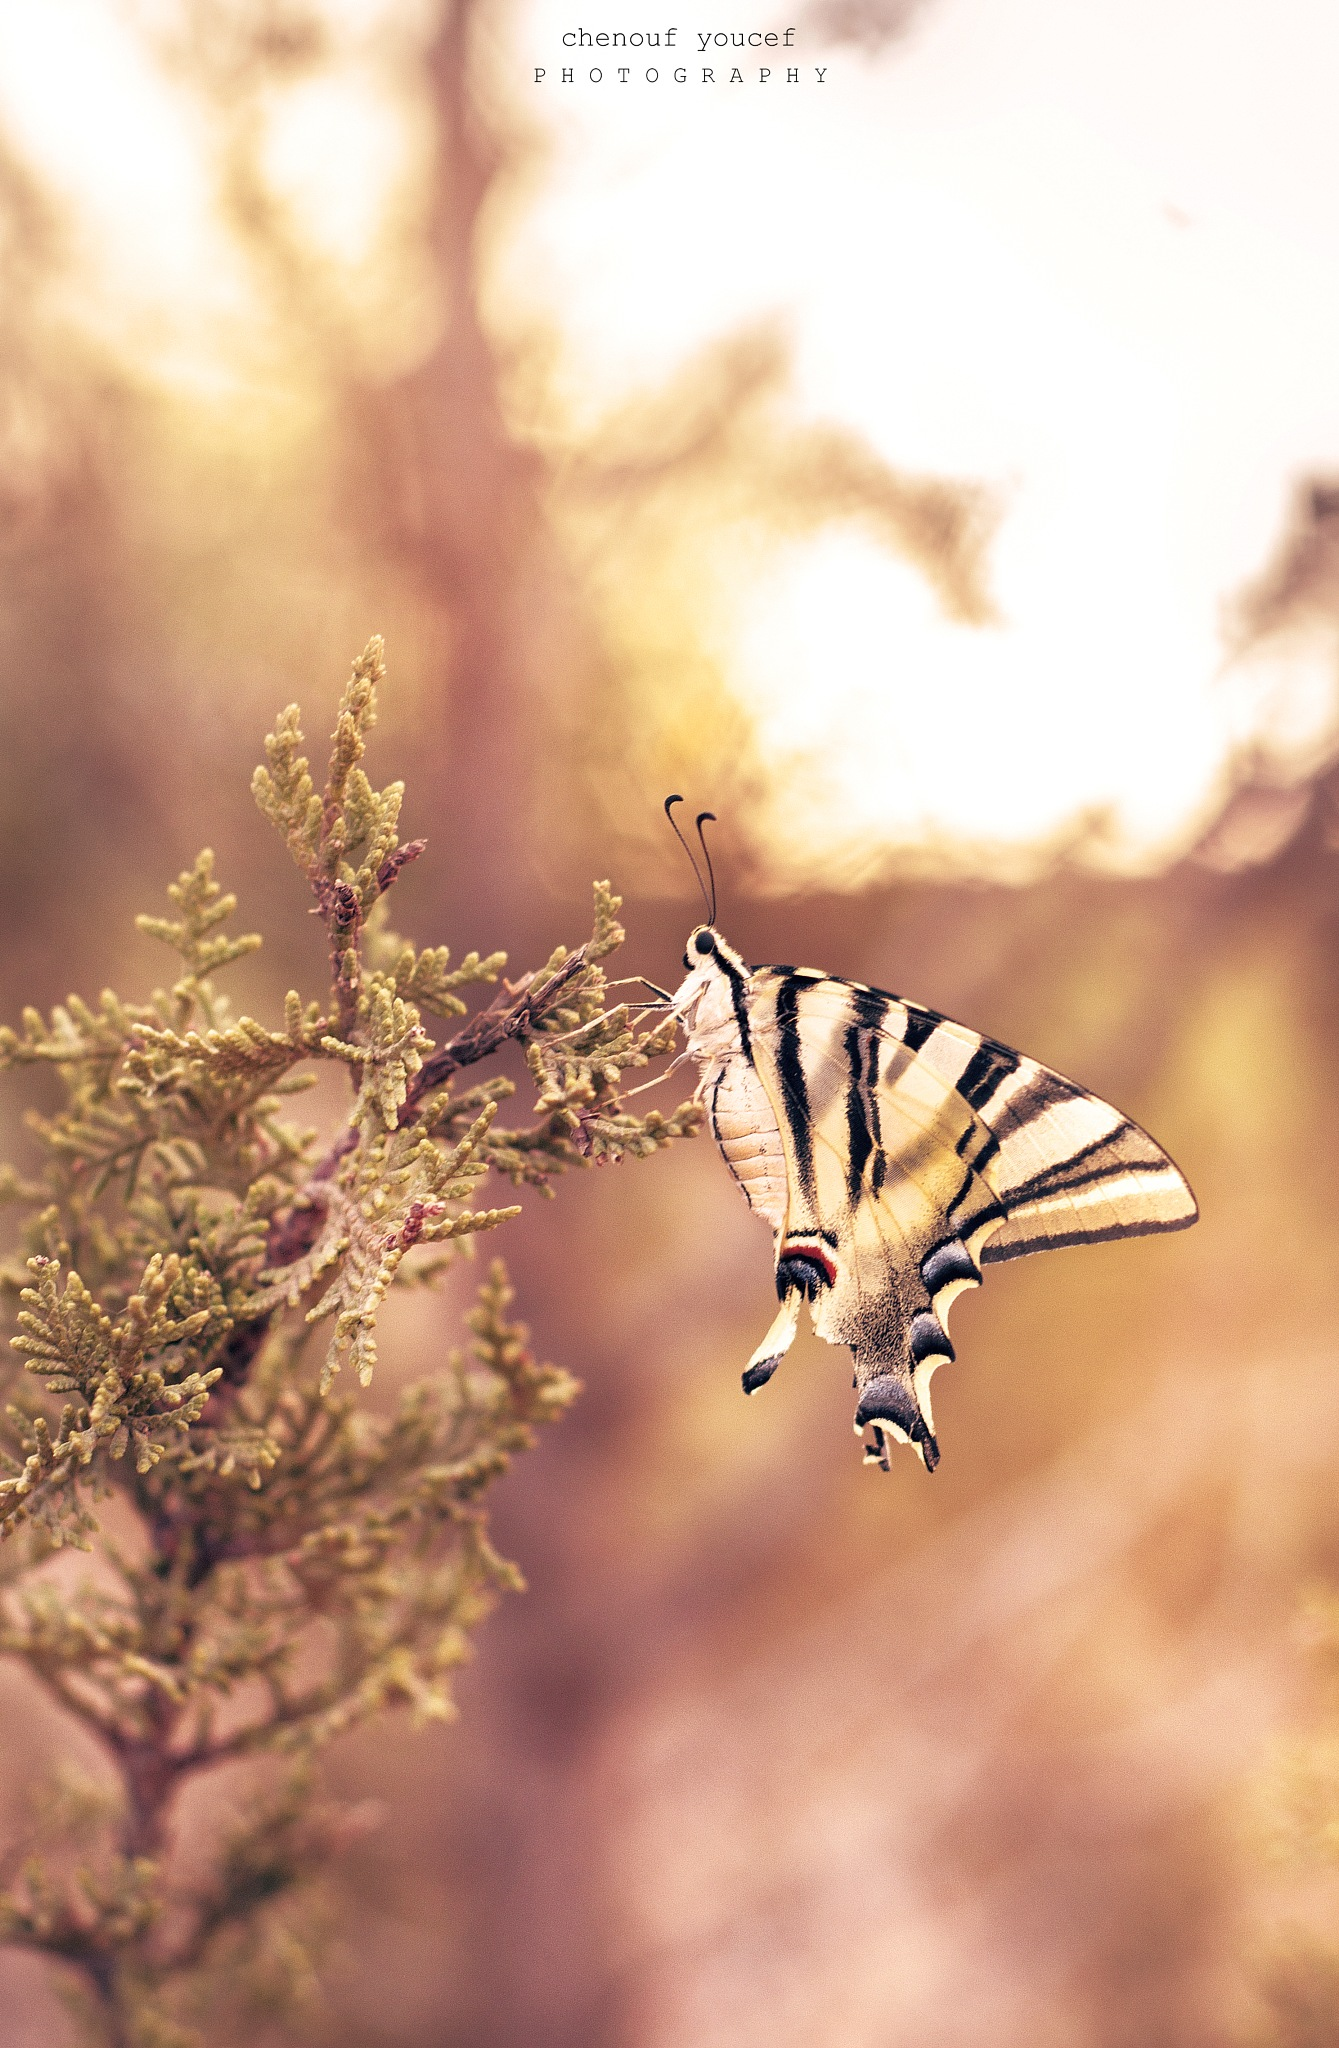 butterfly by Che Youcef